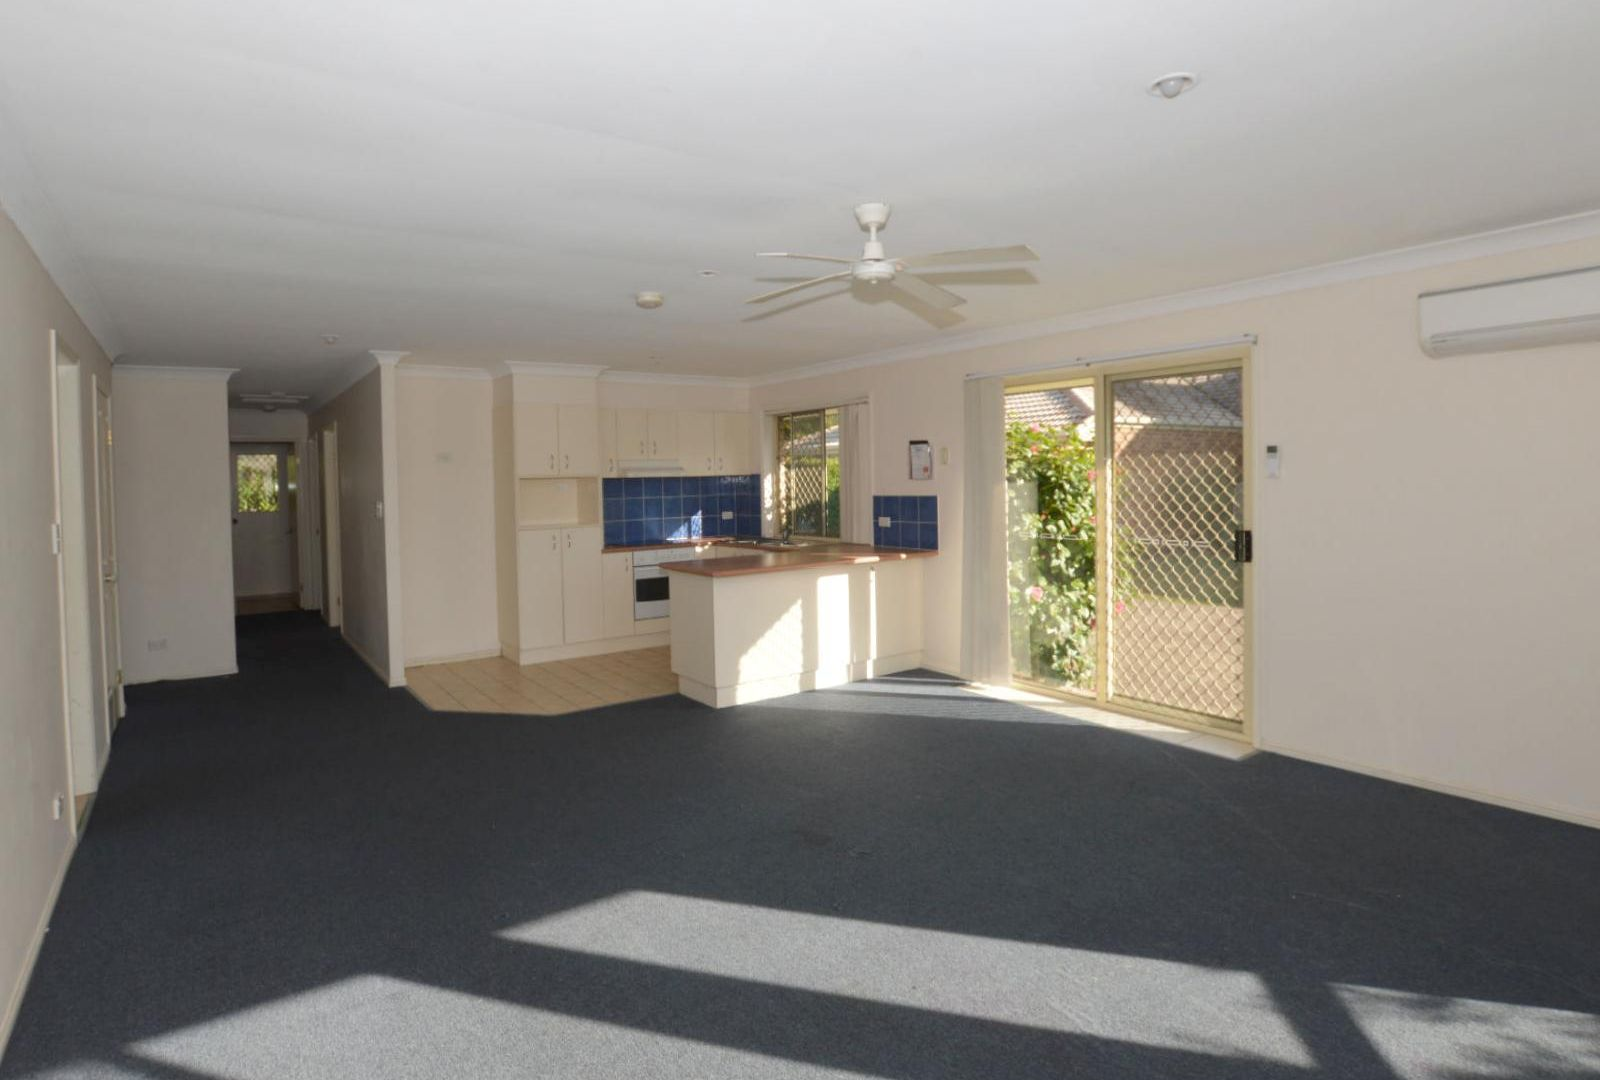 8/1 Highridge Road, Springfield QLD 4300, Image 1